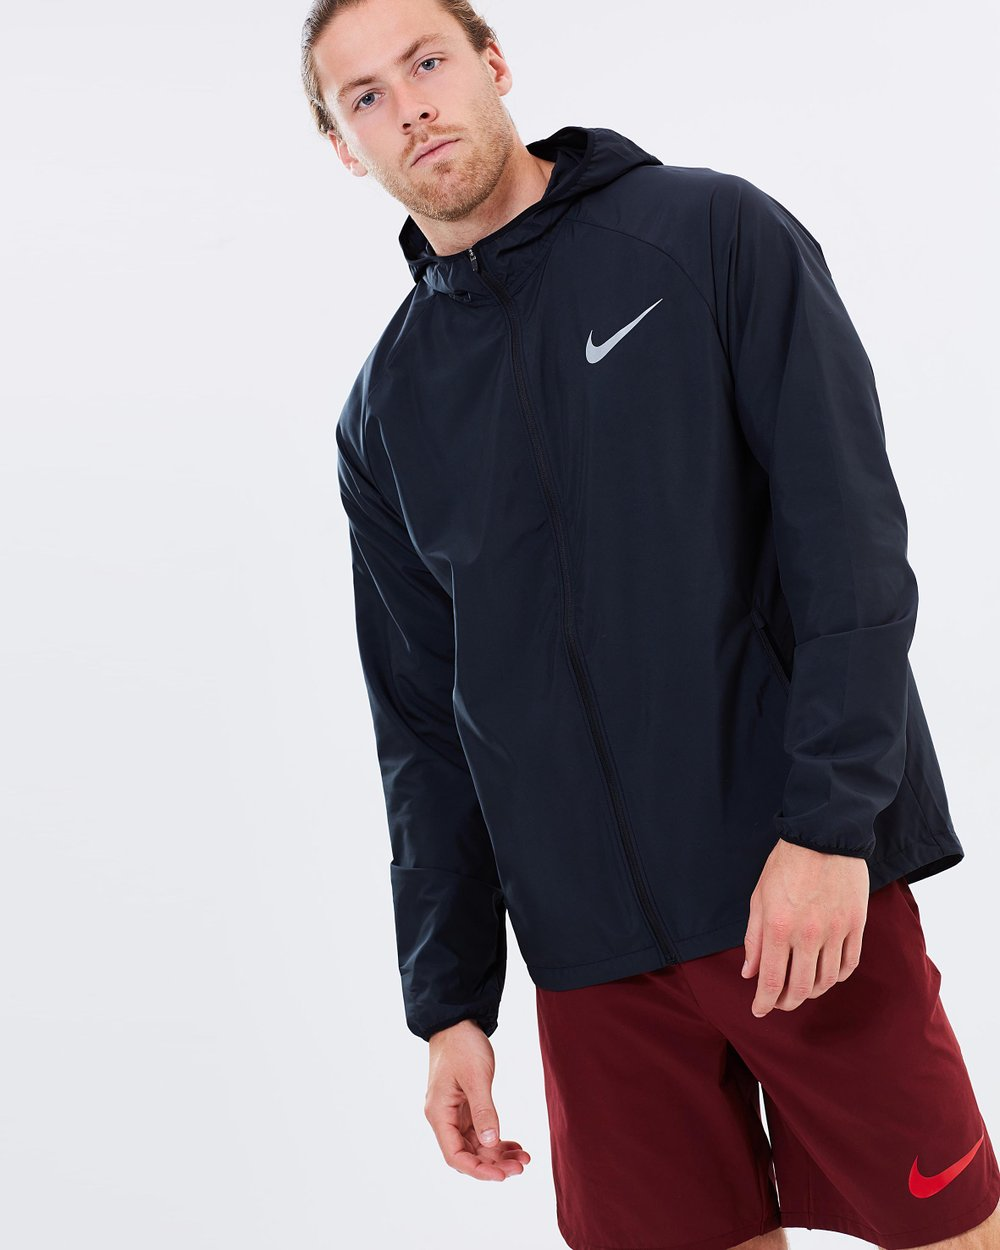 40d600b8aded7 Men's Nike Essential Hooded Running Jacket by Nike Online | THE ICONIC |  Australia